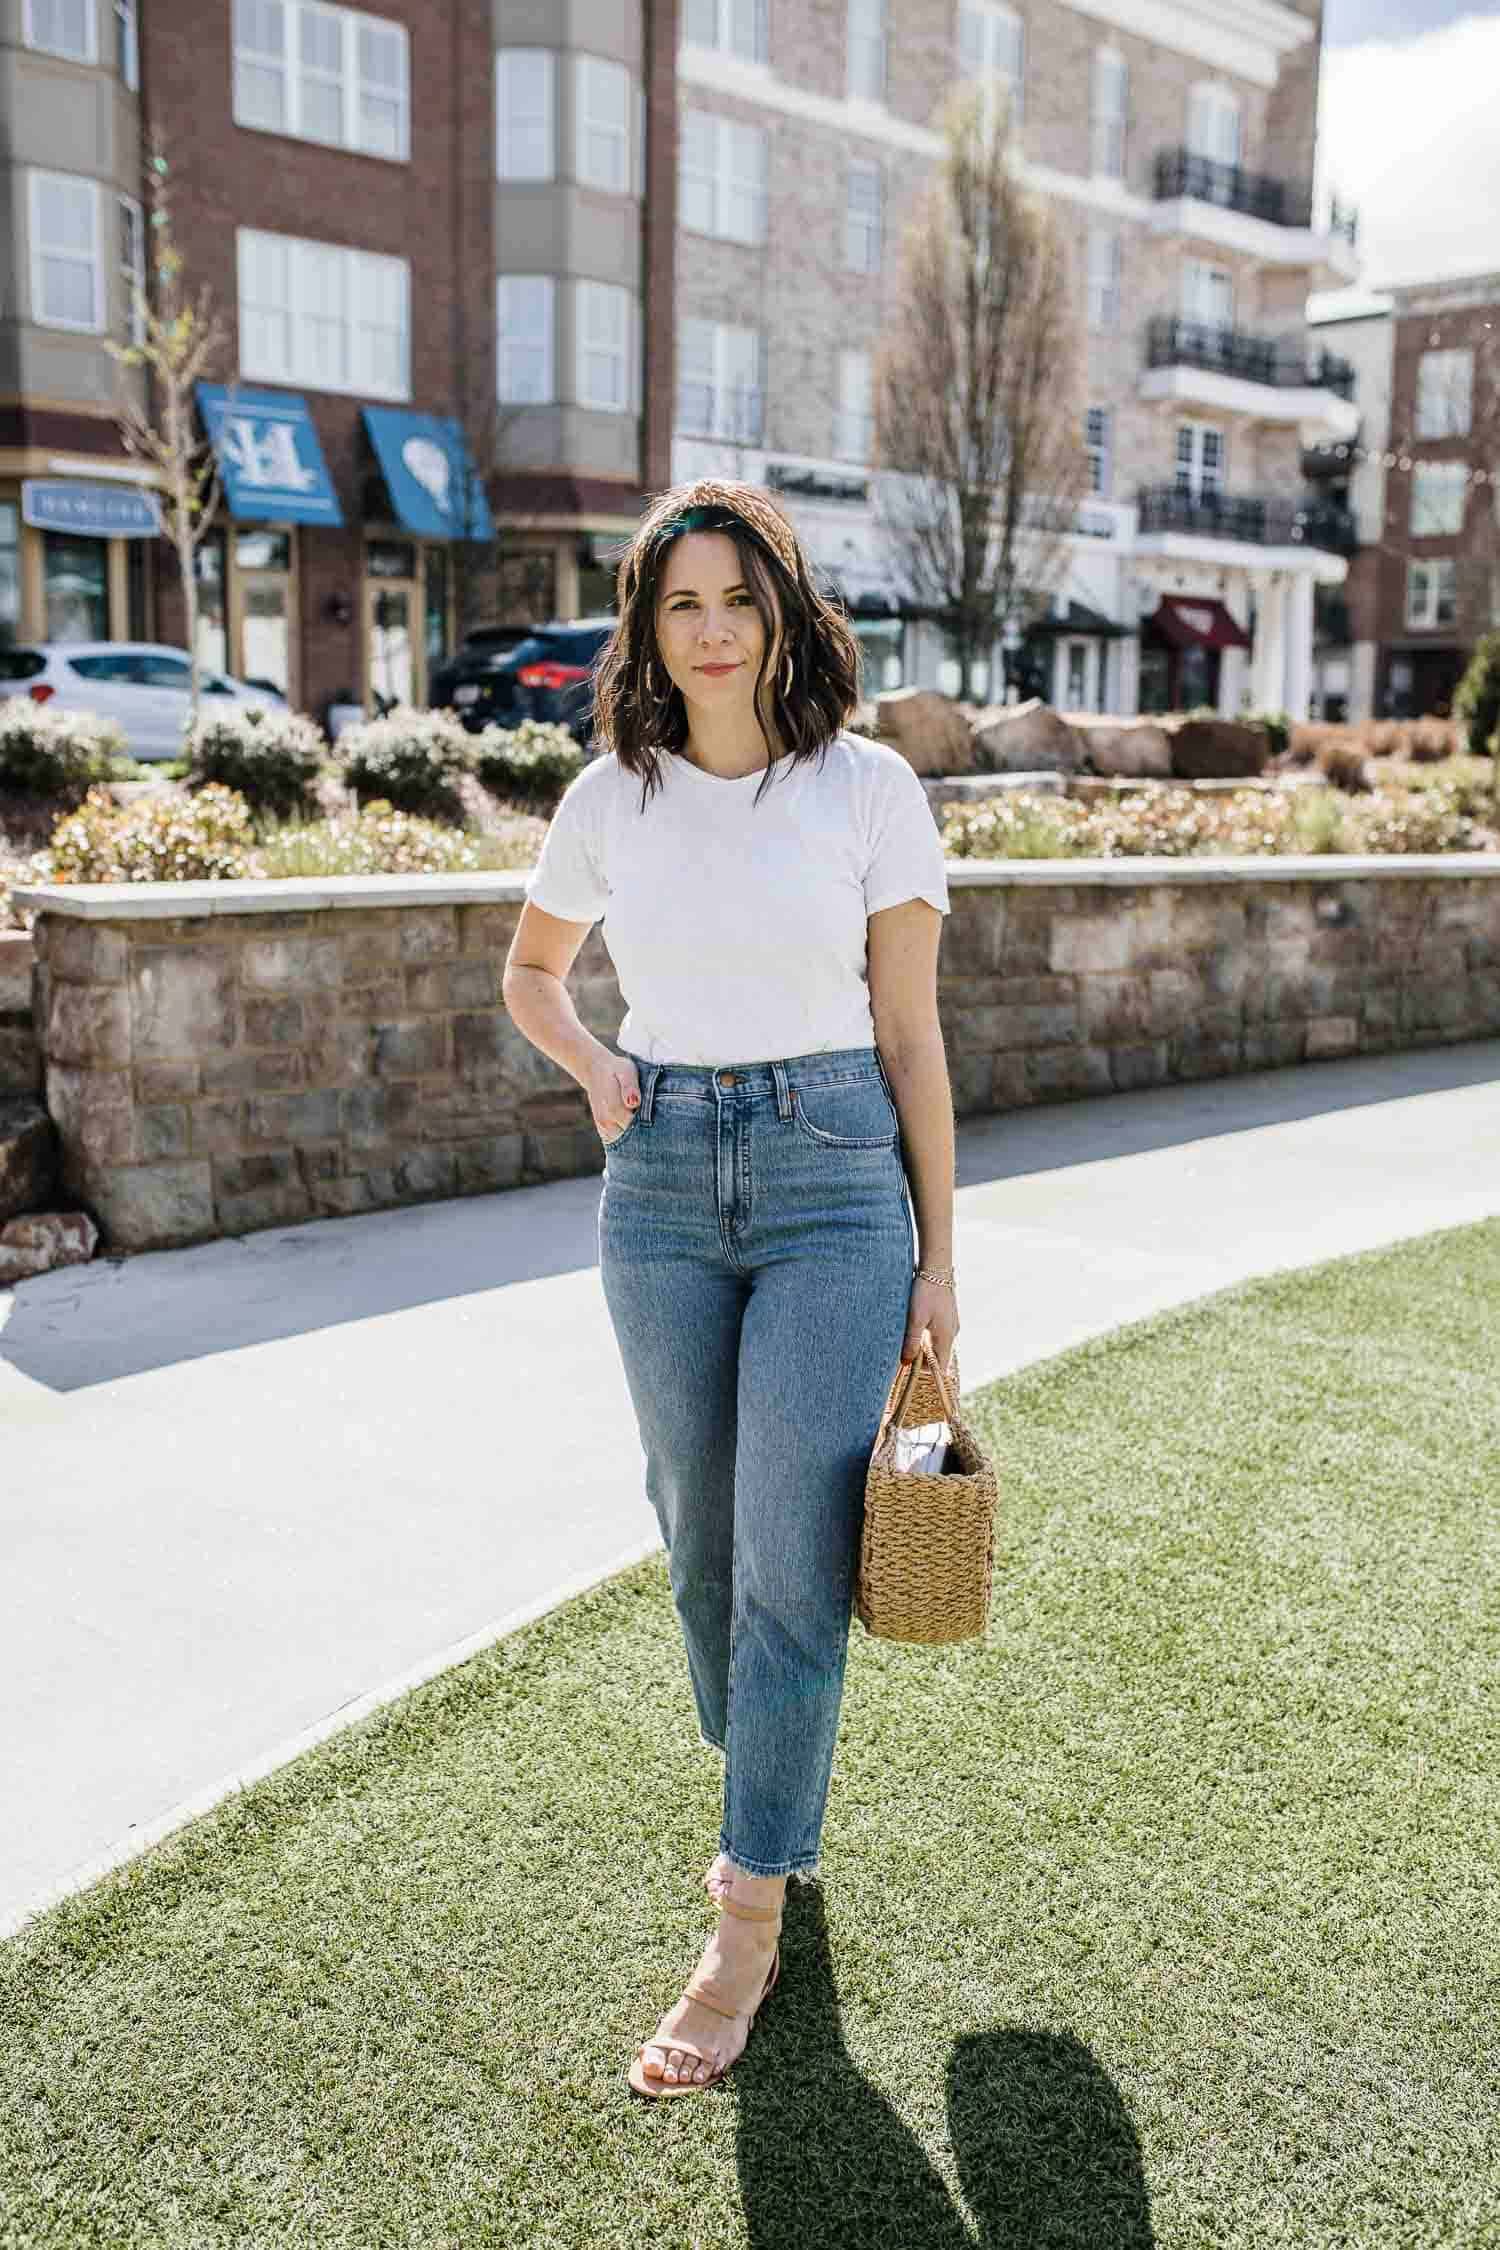 Summer denim guide and shopping tips